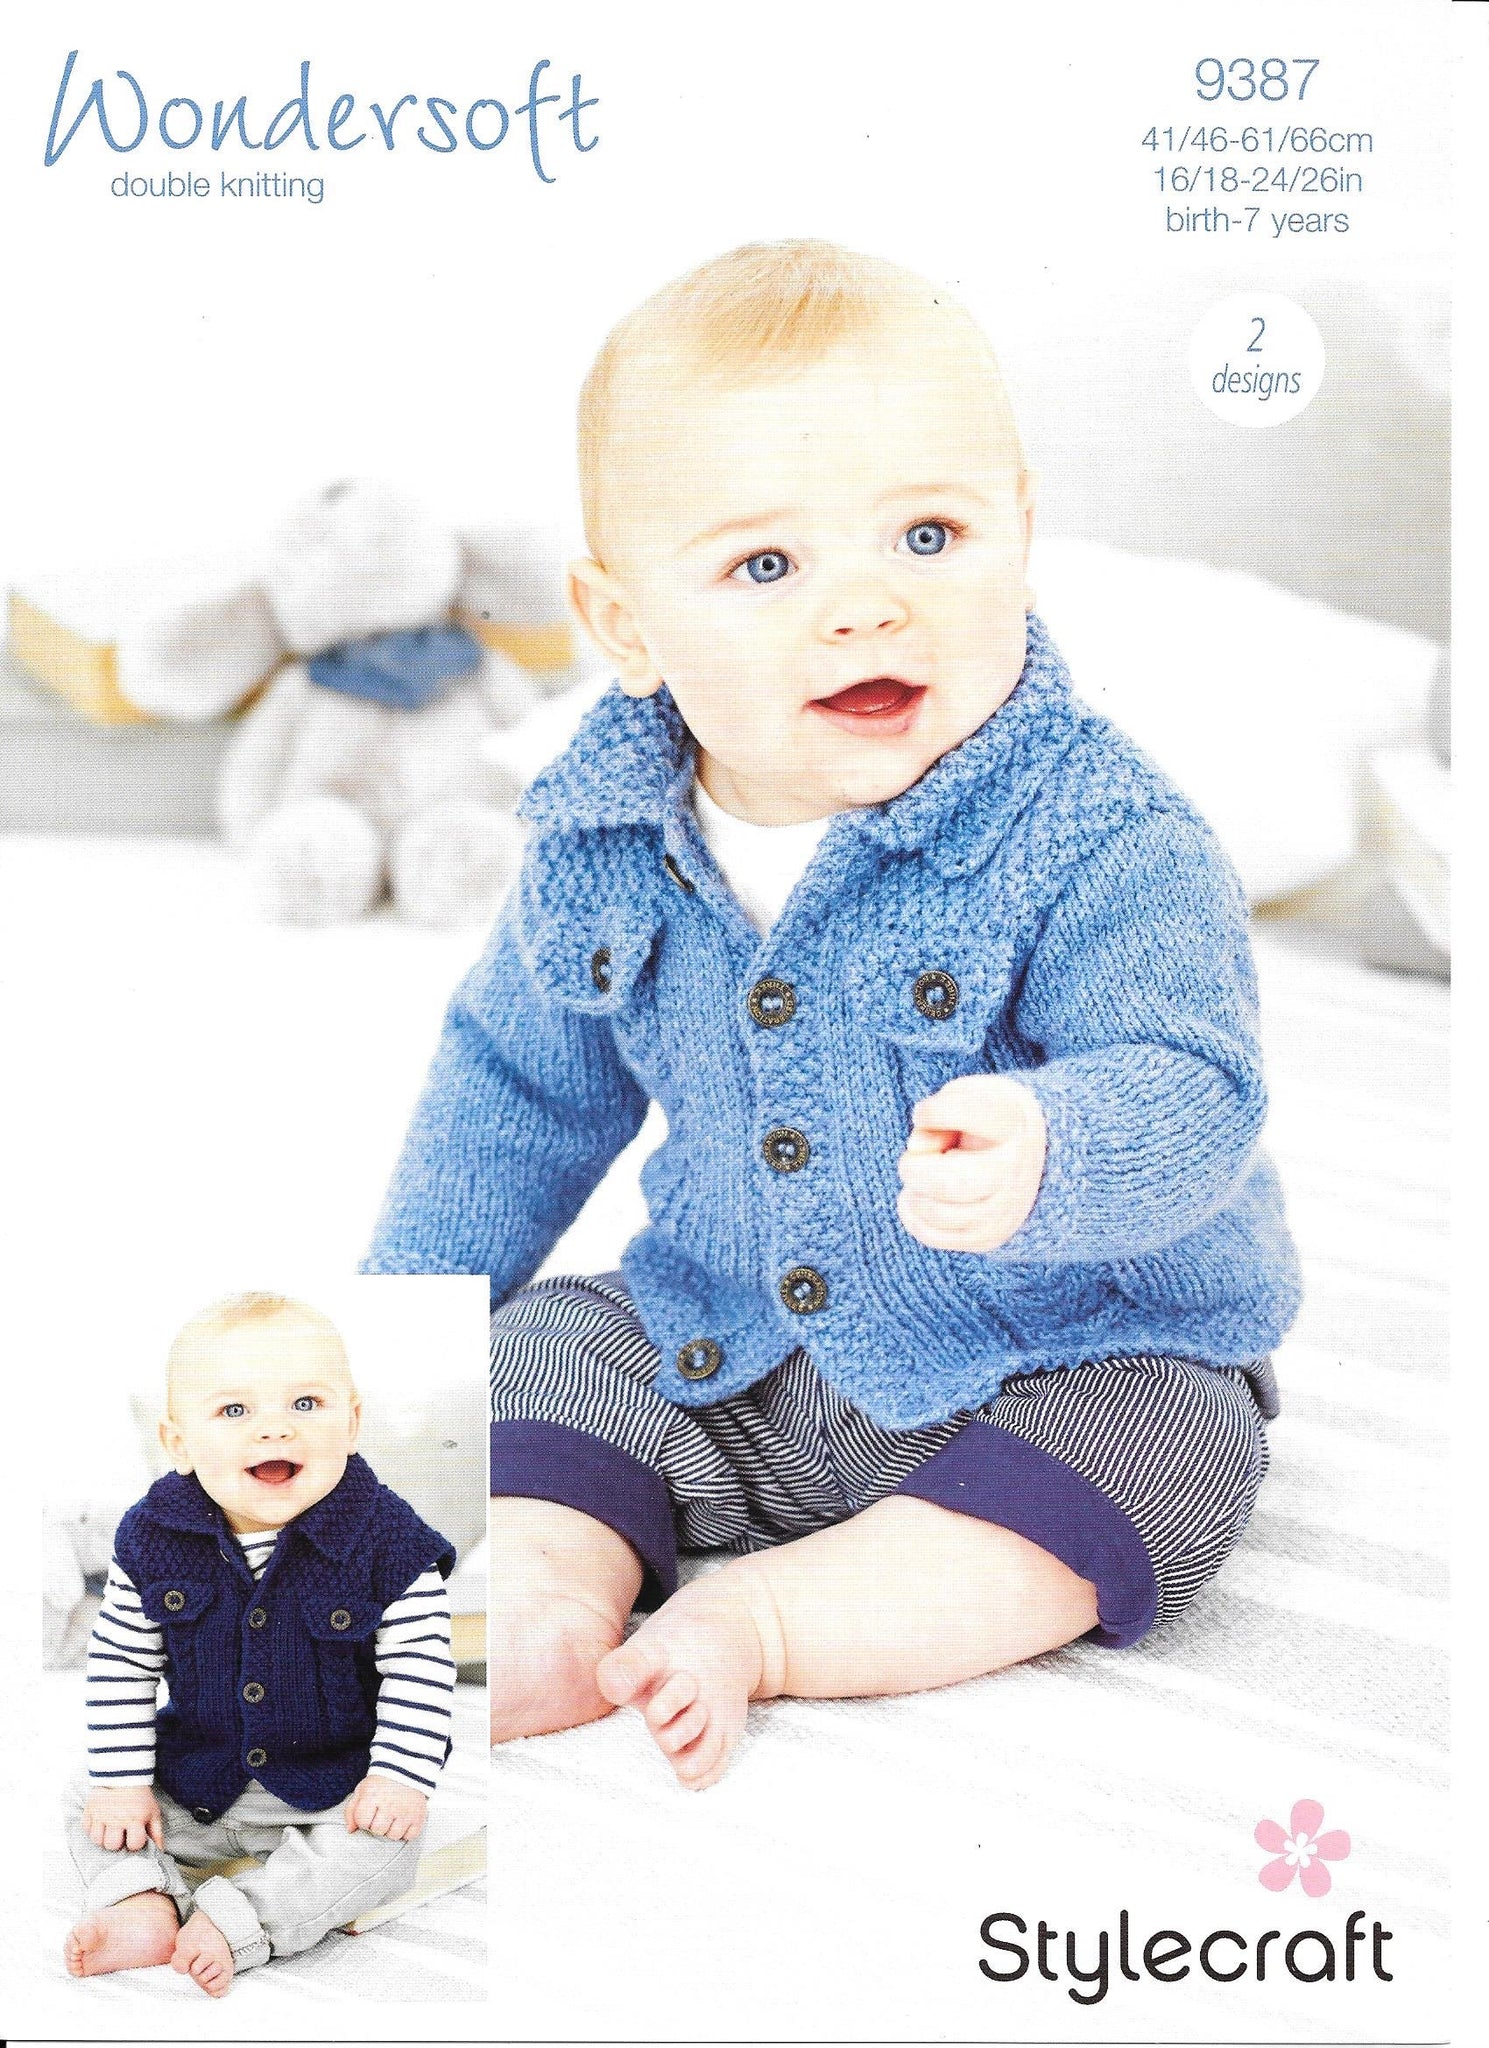 9387 Stylecraft Wondersoft dk baby childcardigan and waistcoat knitting pattern